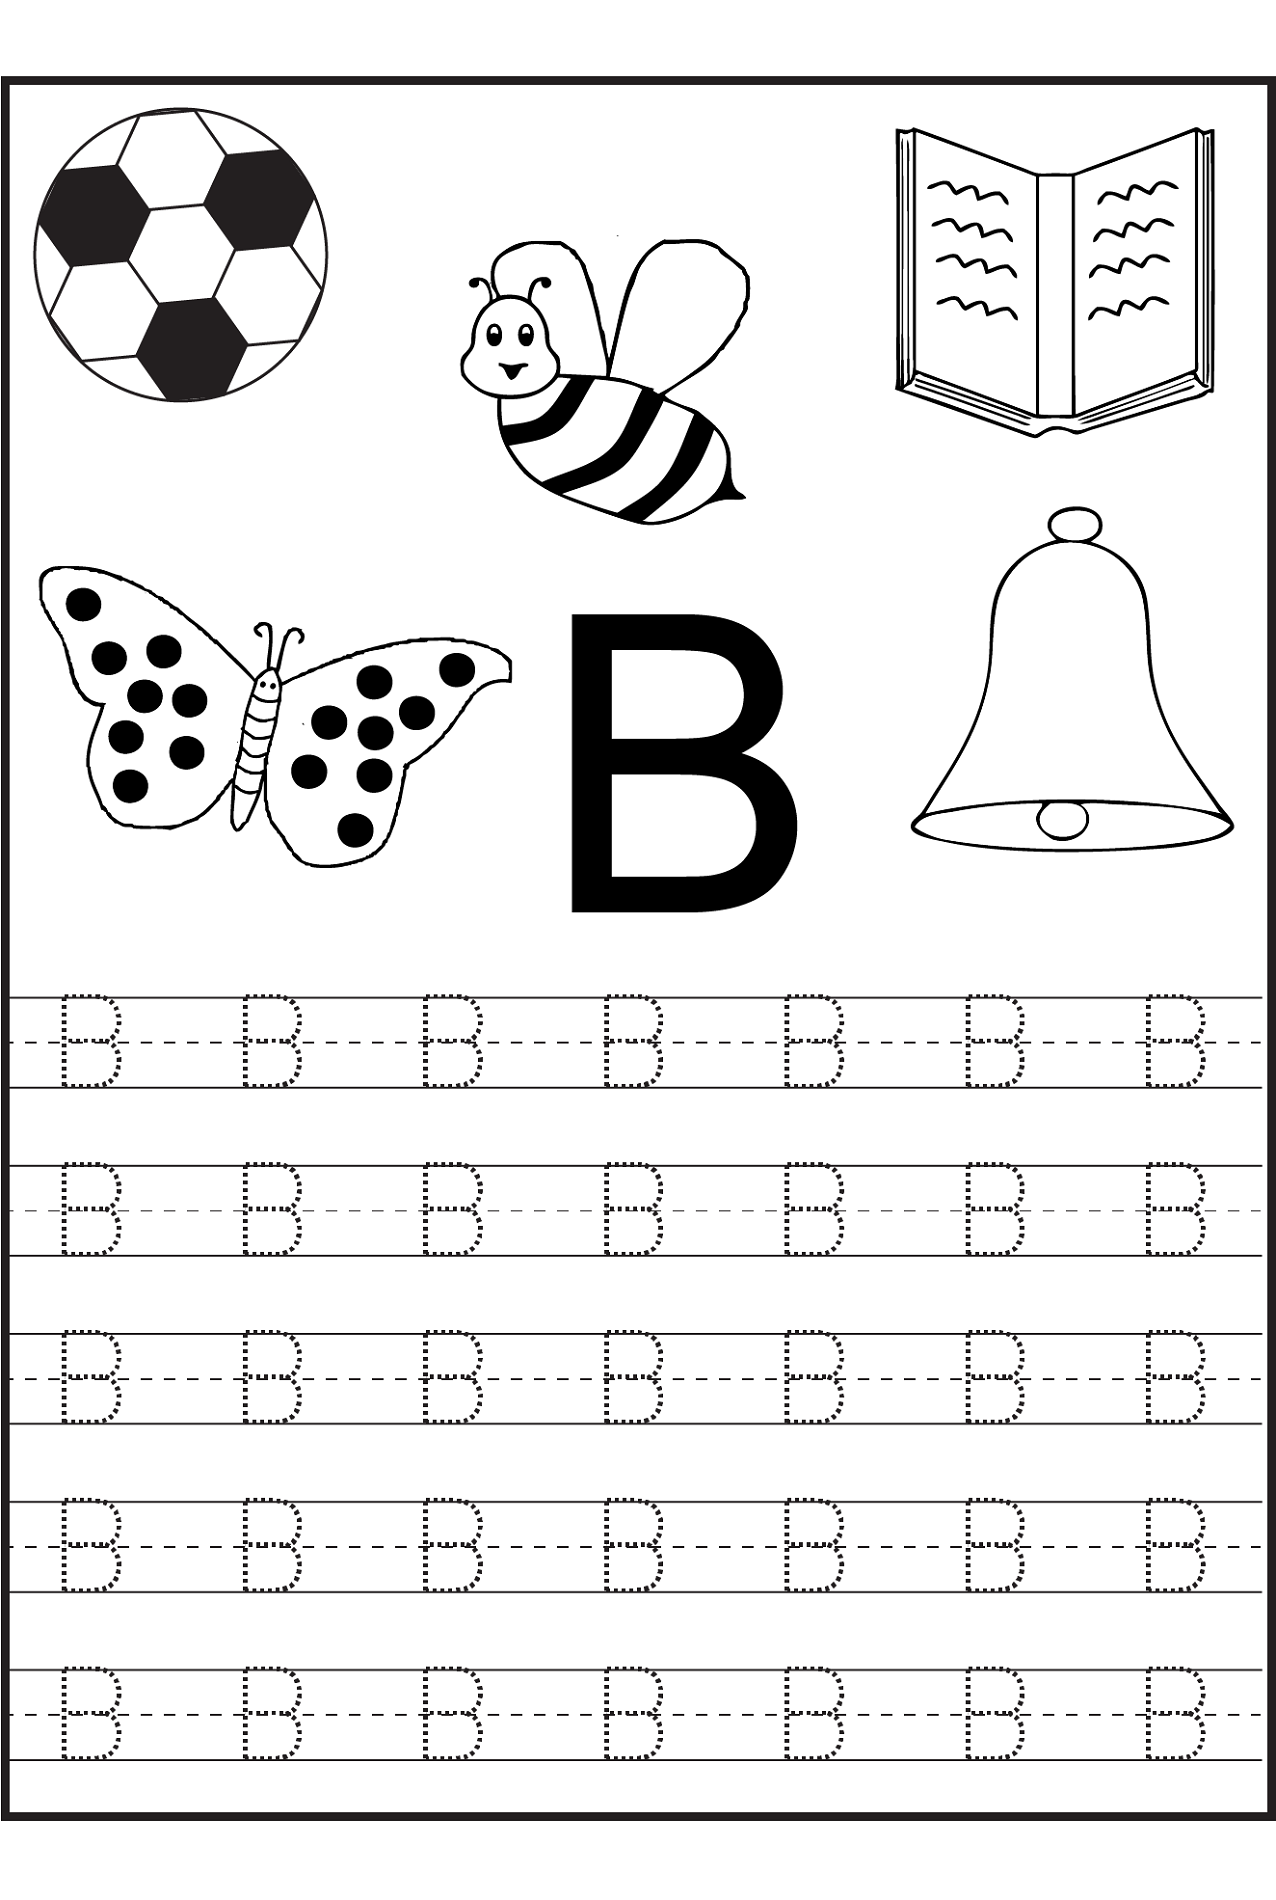 traceable letters worksheets letter B